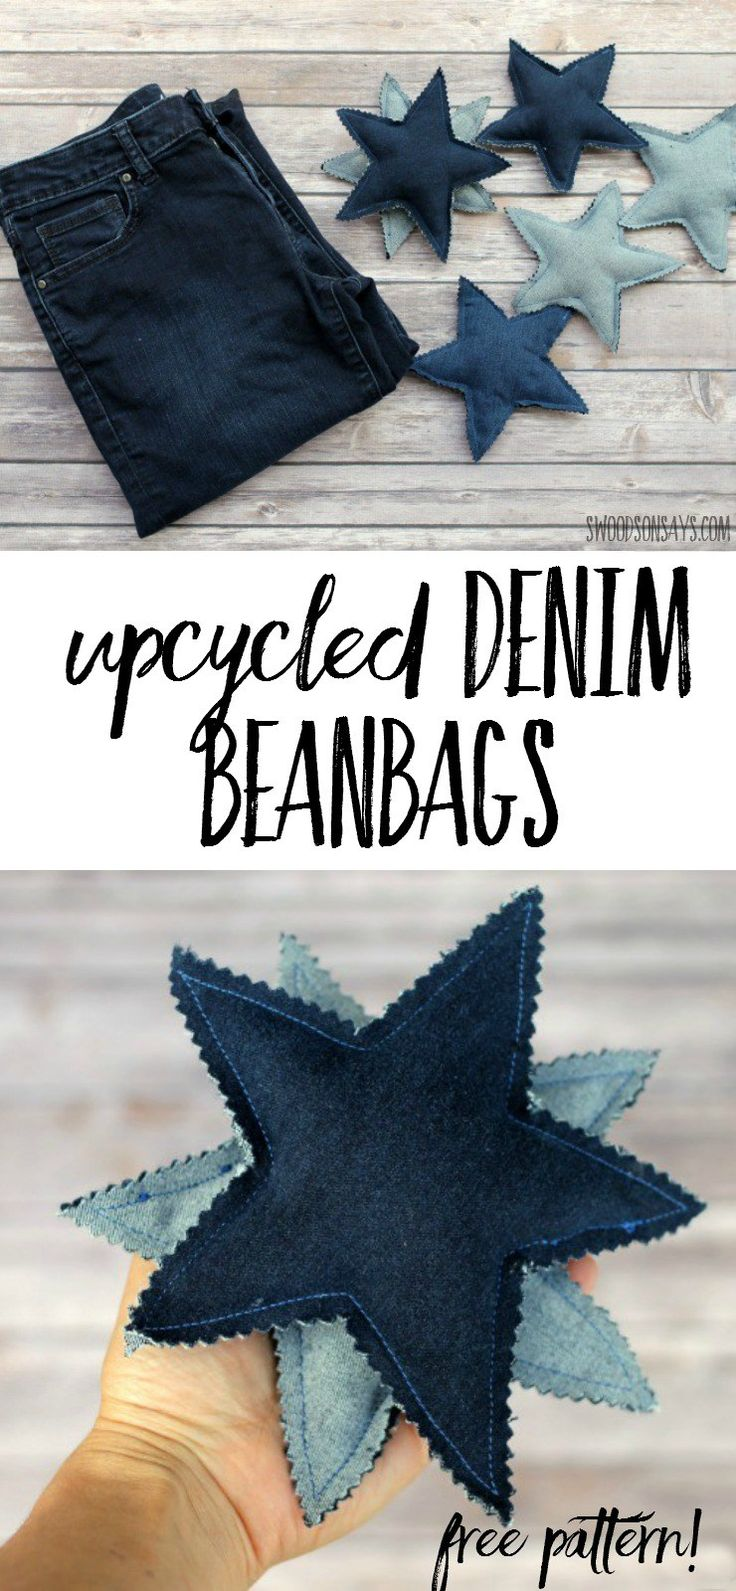 Use this easy upcycling tutorial to make denim beanbags! Stars are fun to catch and easy to throw - upcycled bluejean toy ideas are a great handmade toy. My kids love playing with these!